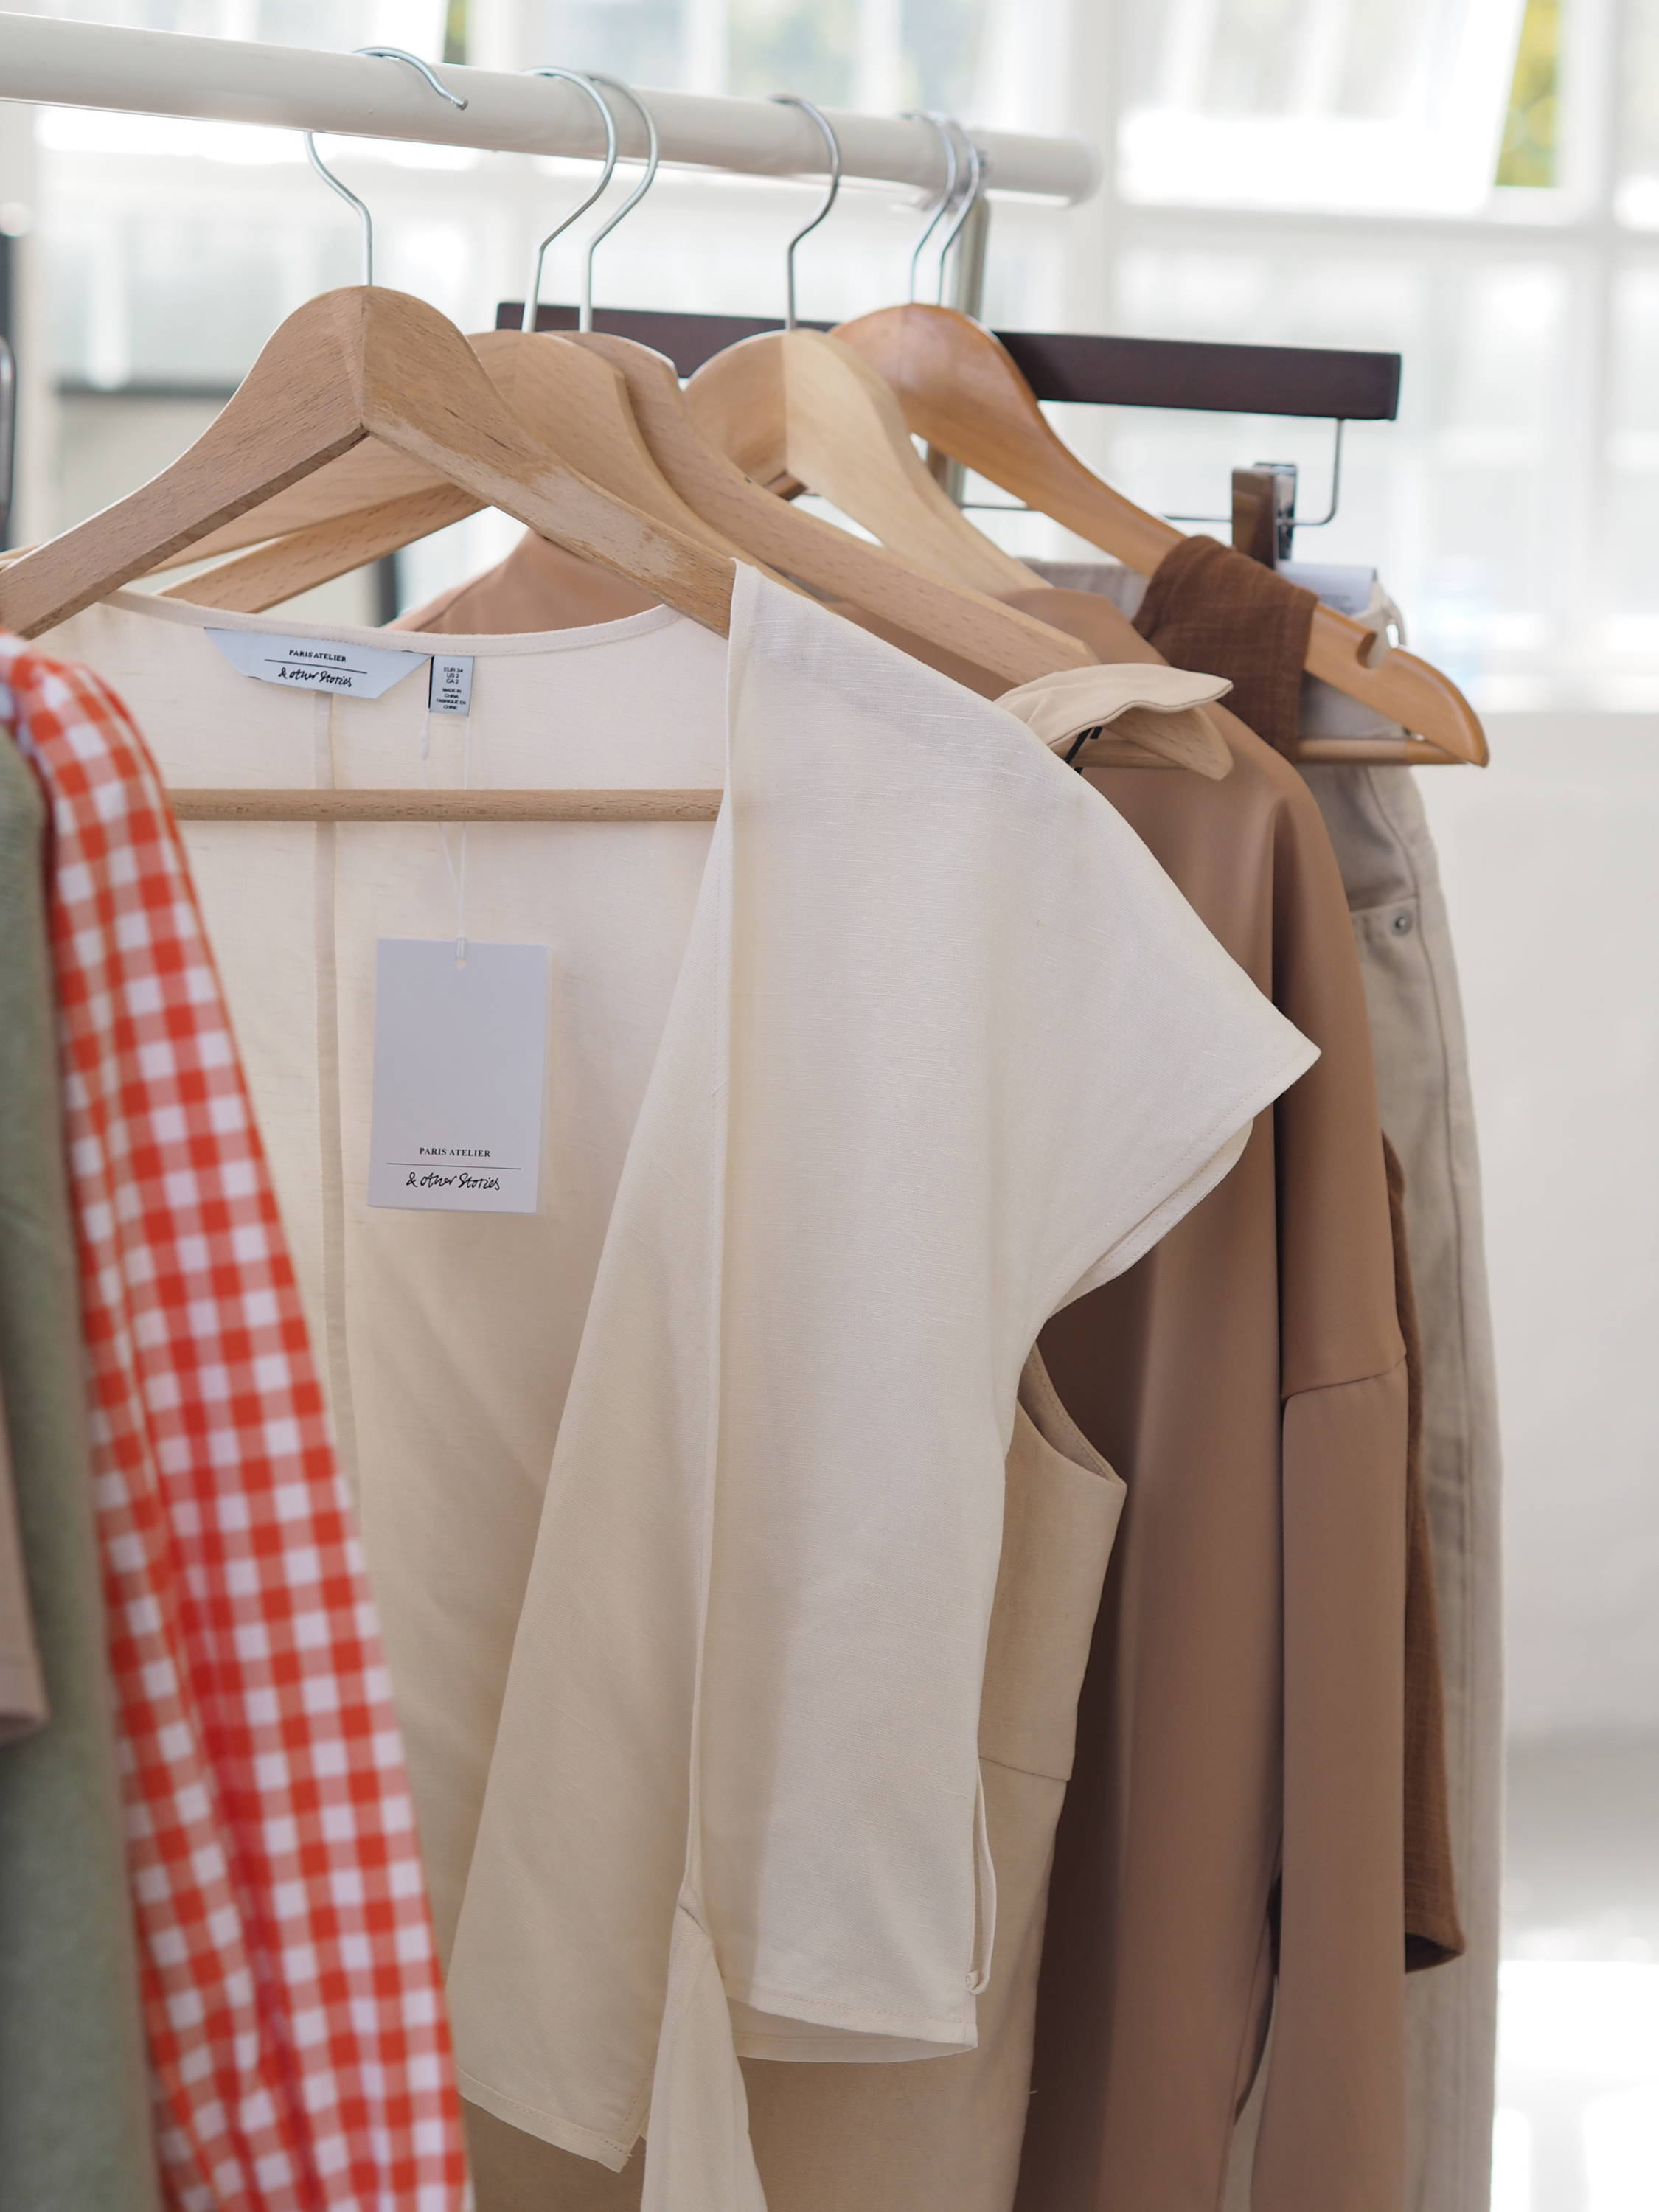 Clothes rail | Behind the scenes